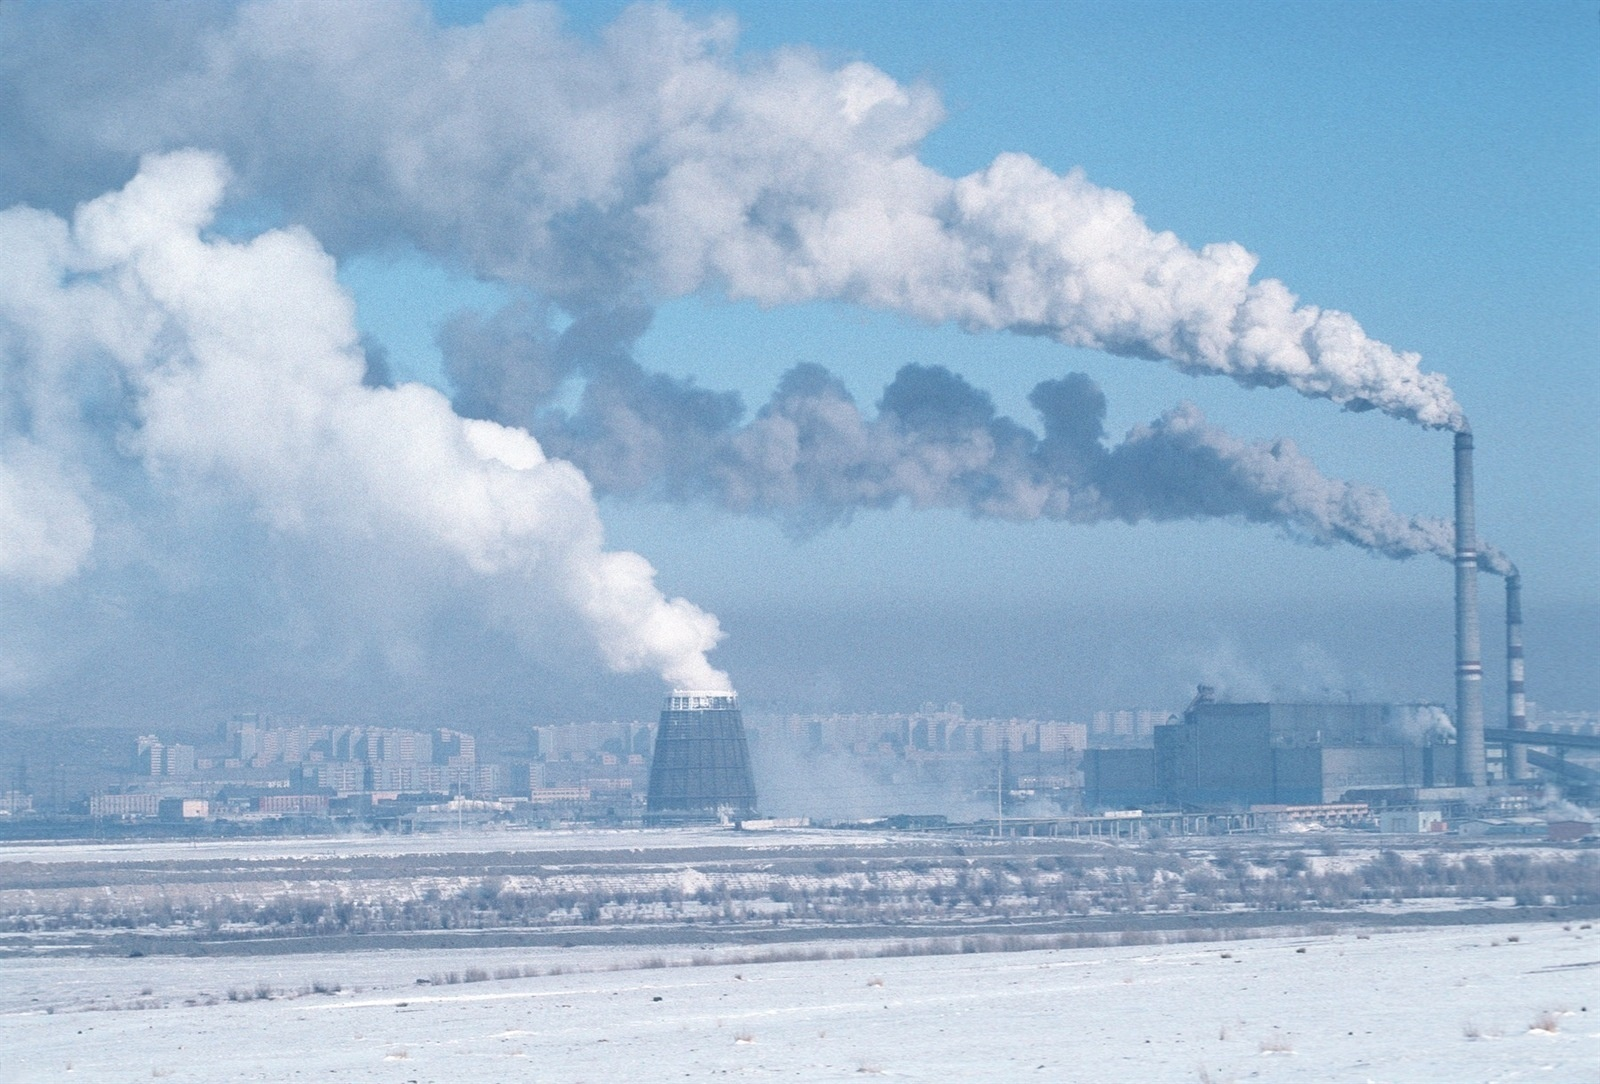 Factory chimneys spewing smoke and pollution into the atmosphere on the outskirts of Ulan Bator.